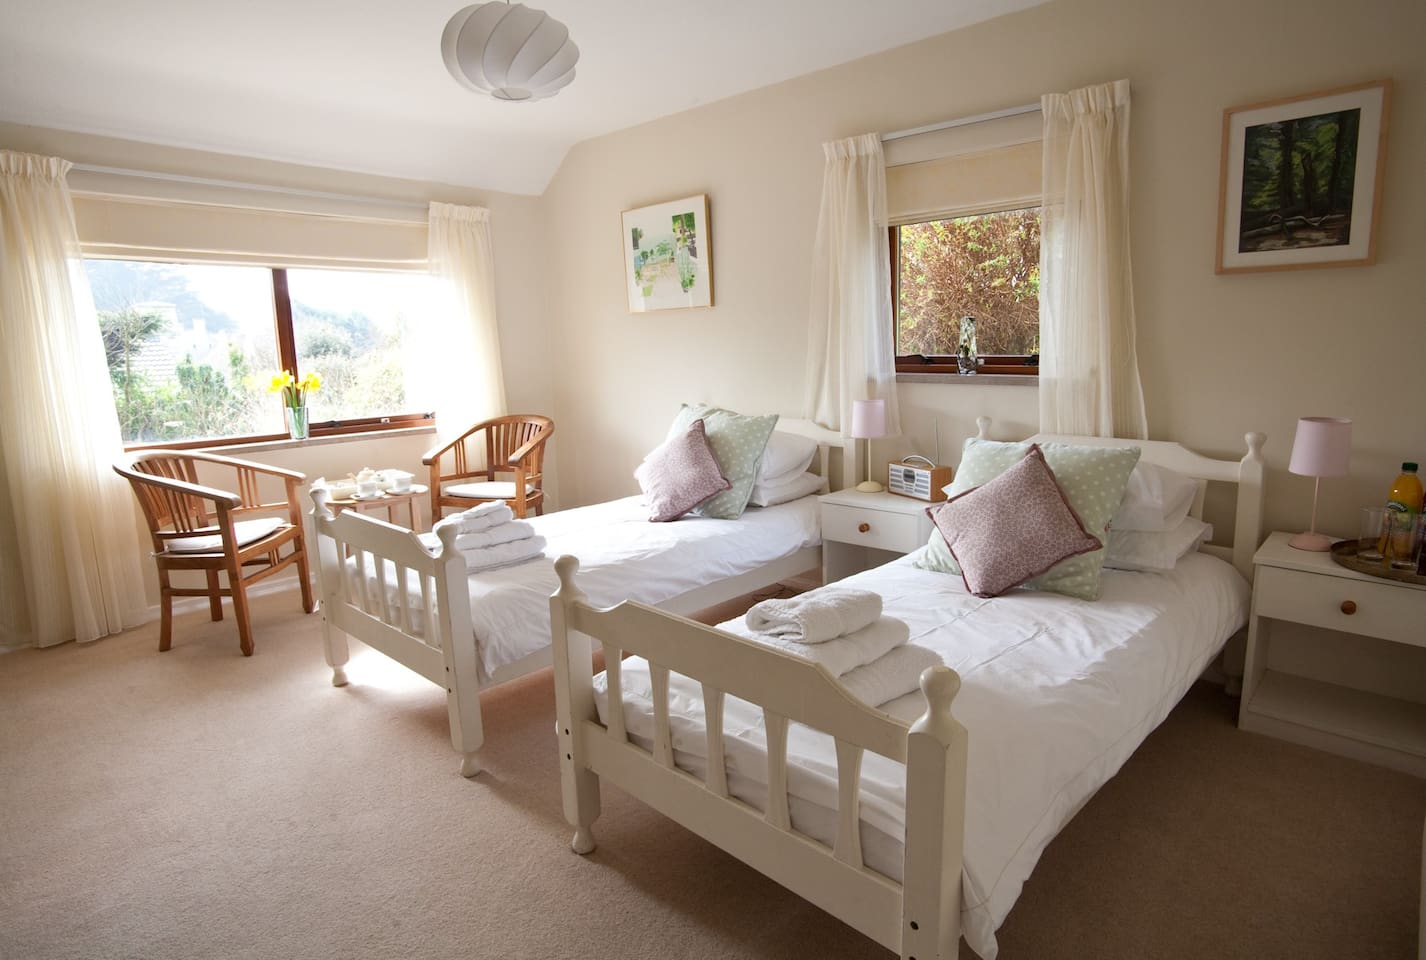 Spacious and comfortable twin room with garden view